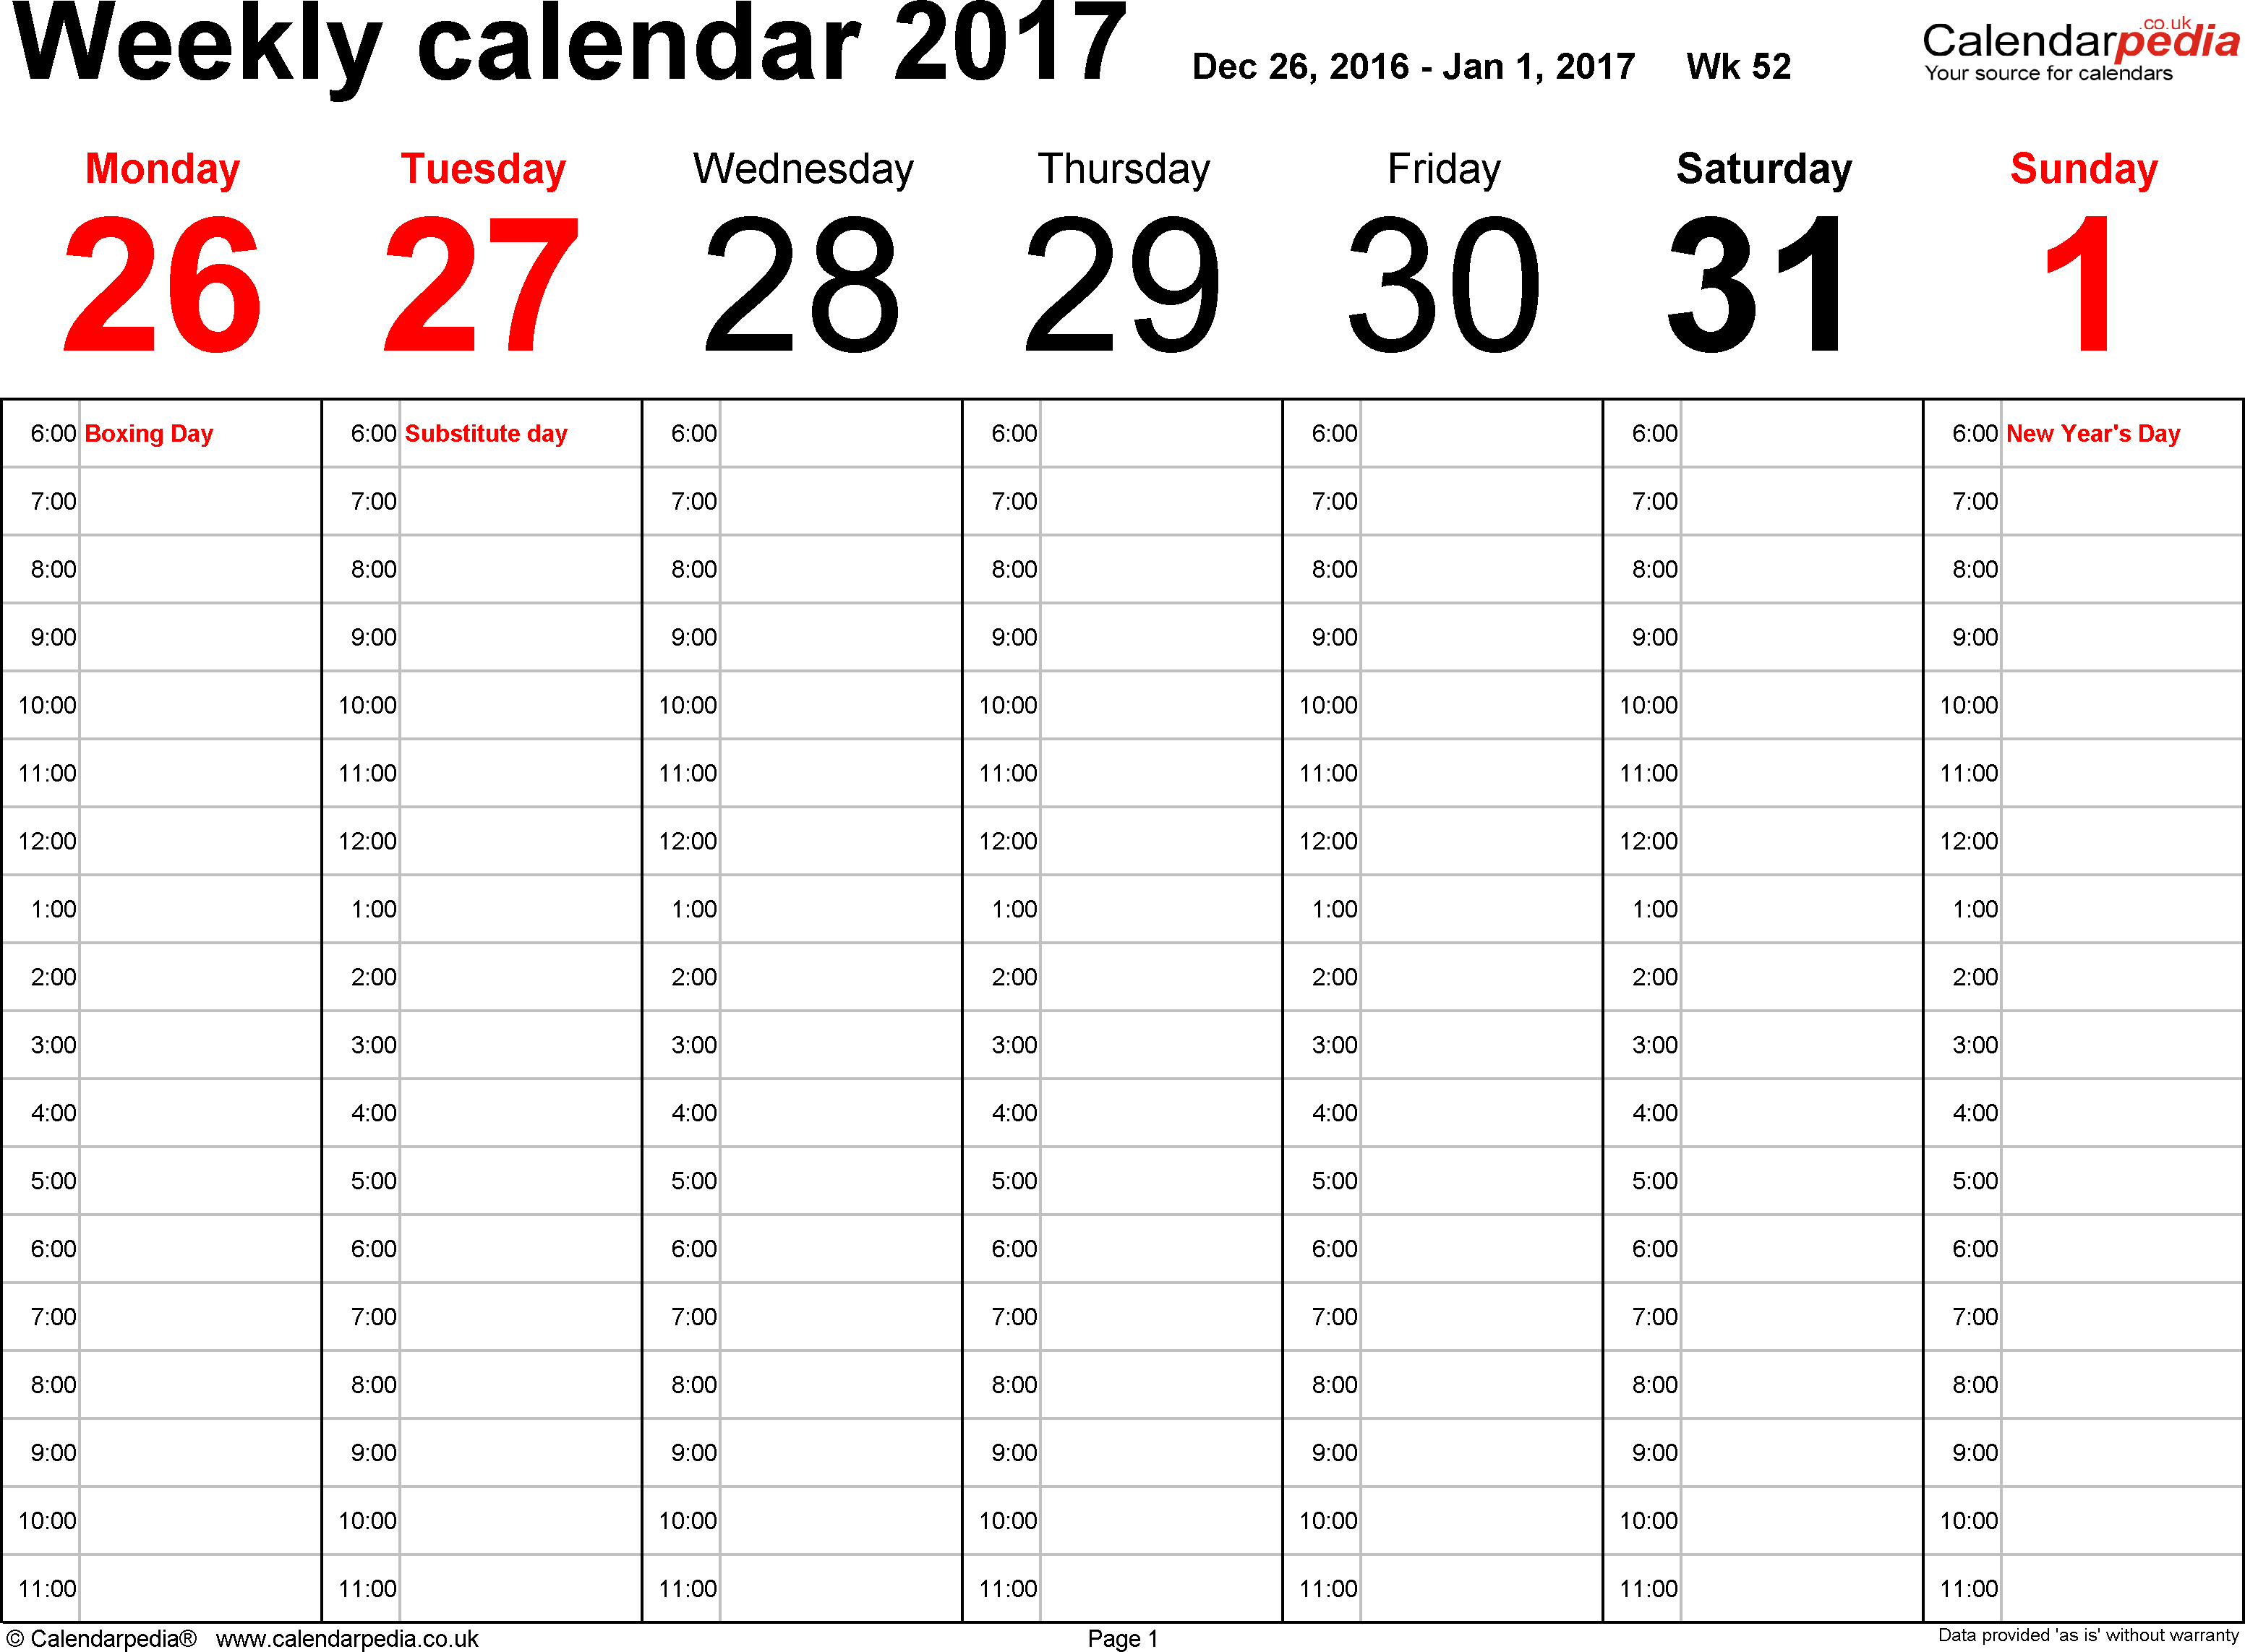 Word template 1: Weekly calendar 2017, landscape orientation, 53 pages (1 calendar week on 1 page), time management layout (showing 18 hours per day from 6am to midnight in 1 hour steps)